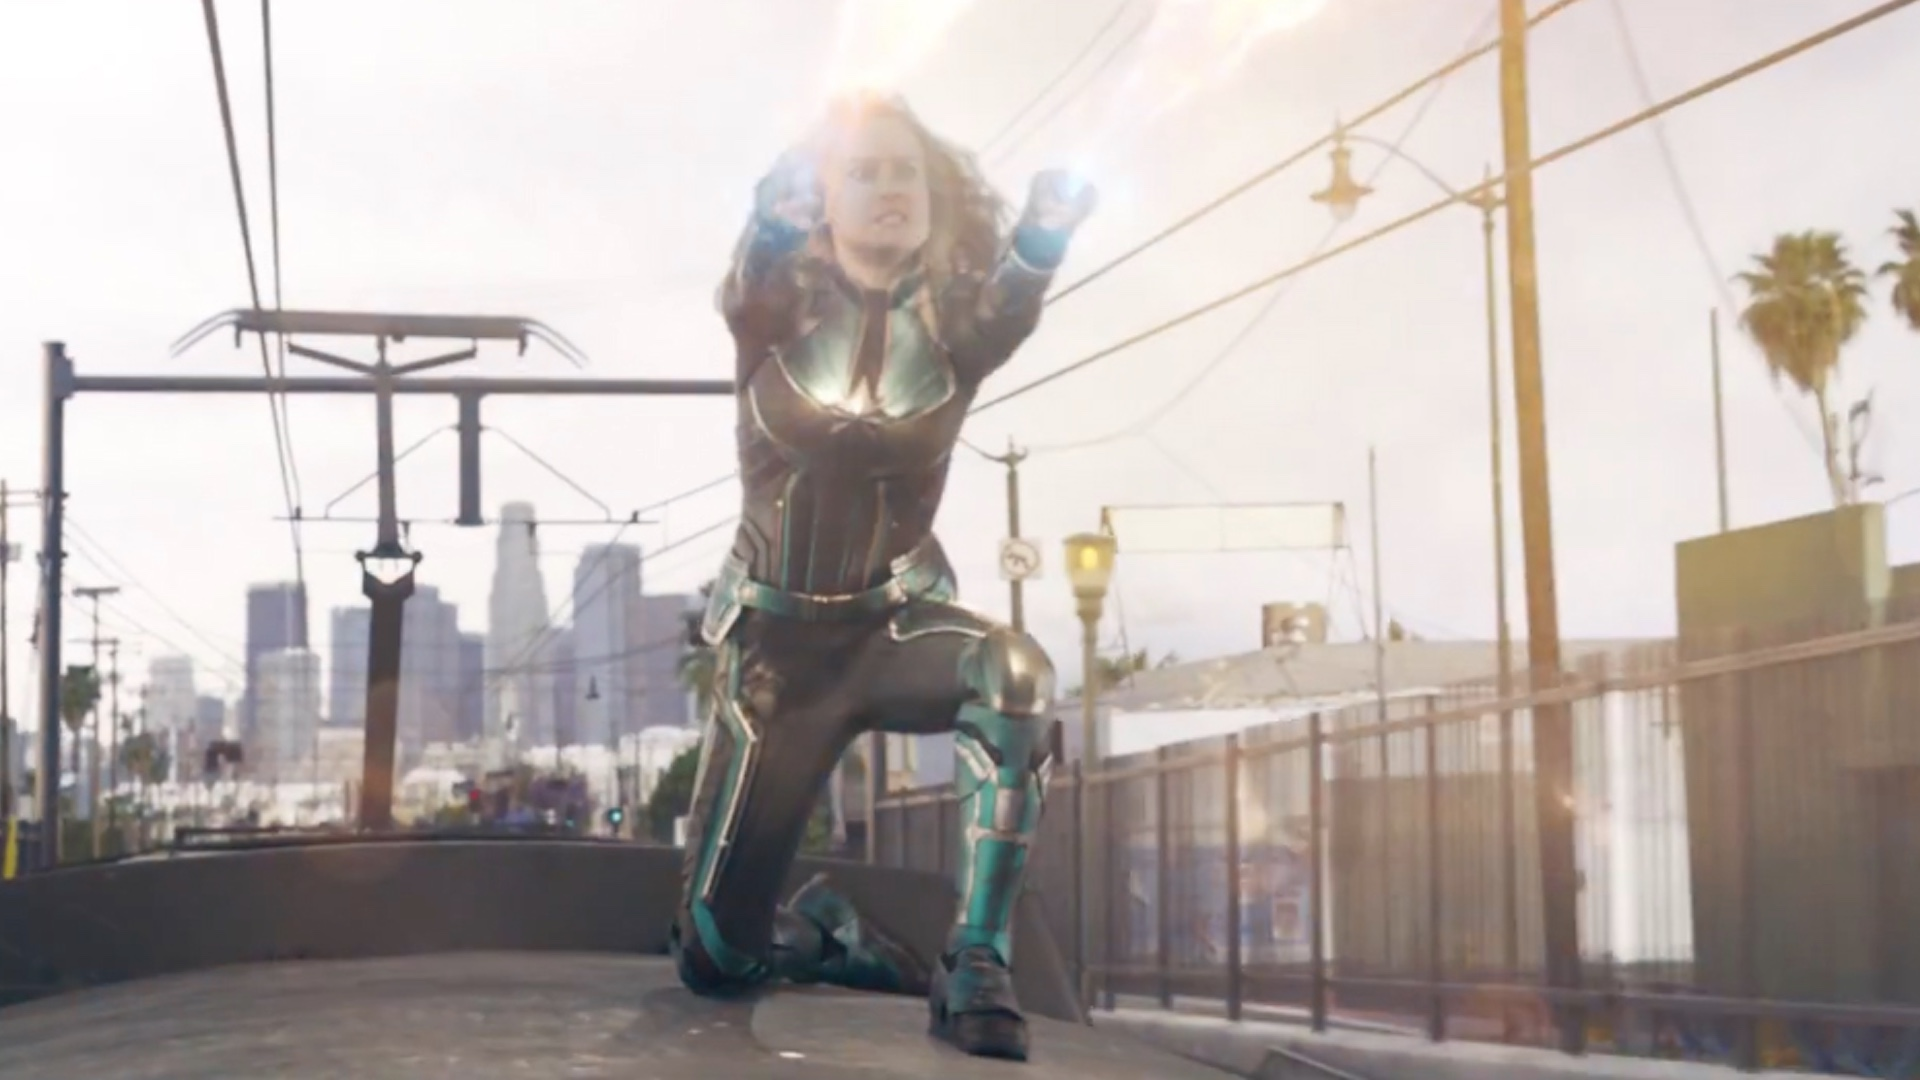 new-captain-marvel-clip-shows-a-train-fight-scene-social.jpg